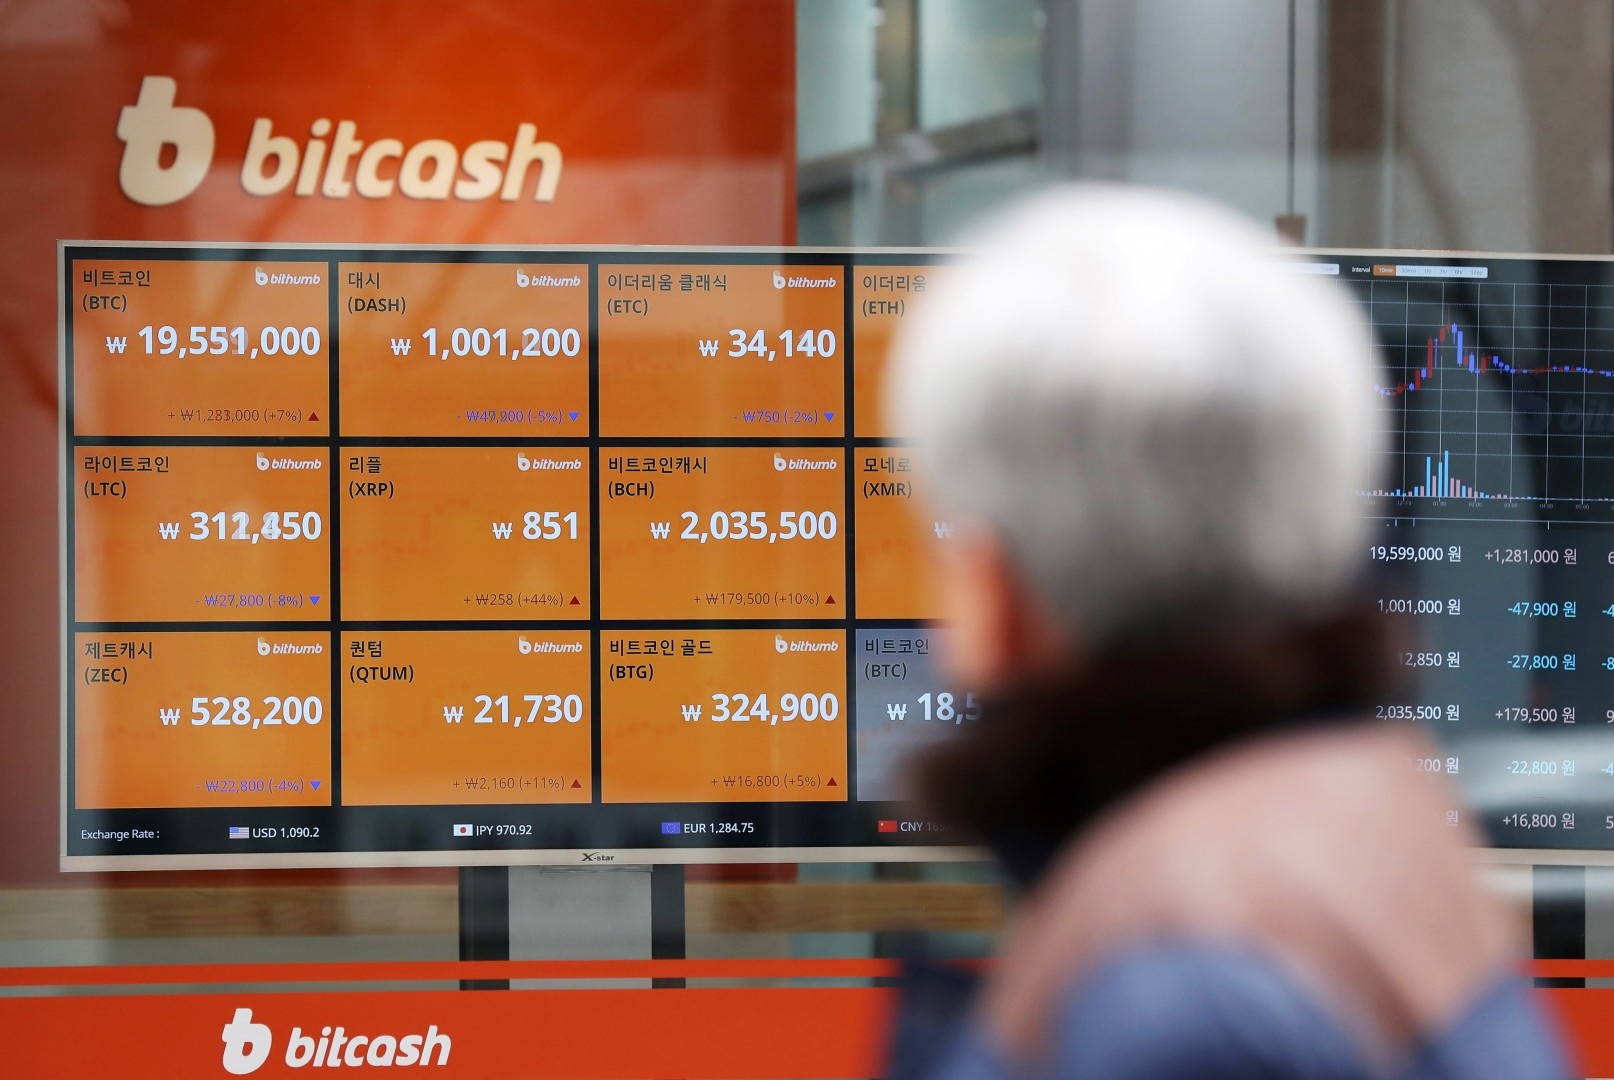 Cryptocurrency firms sneak into mainstream through 'back door